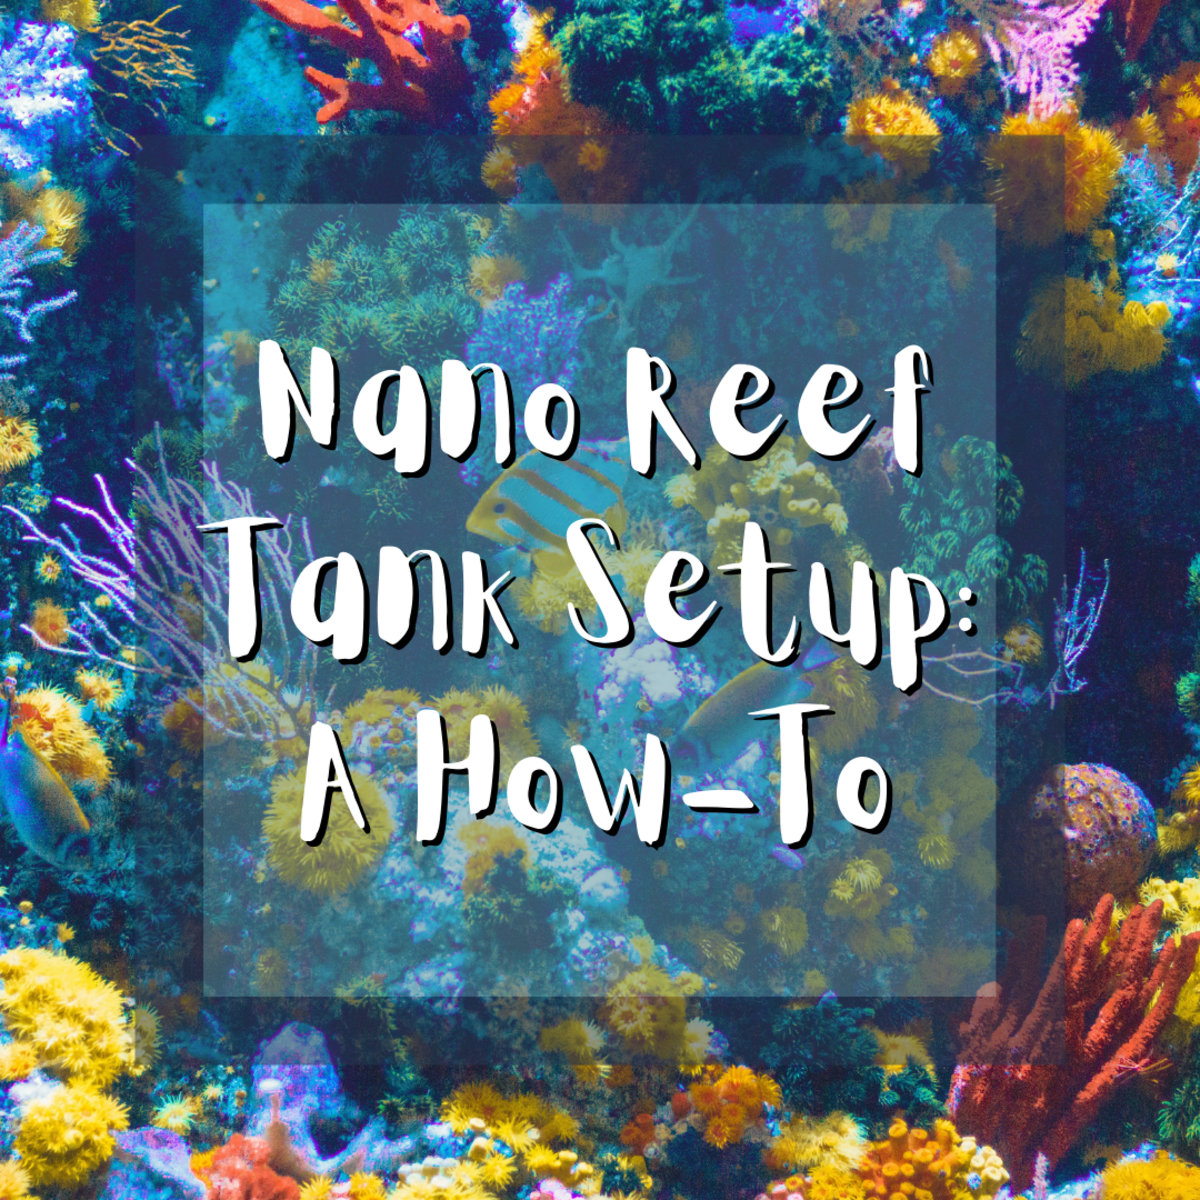 Learn everything you need to know about nano reef tank setup, from achieving proper pH and specific gravity to performing water changes and dealing with red slime algae.